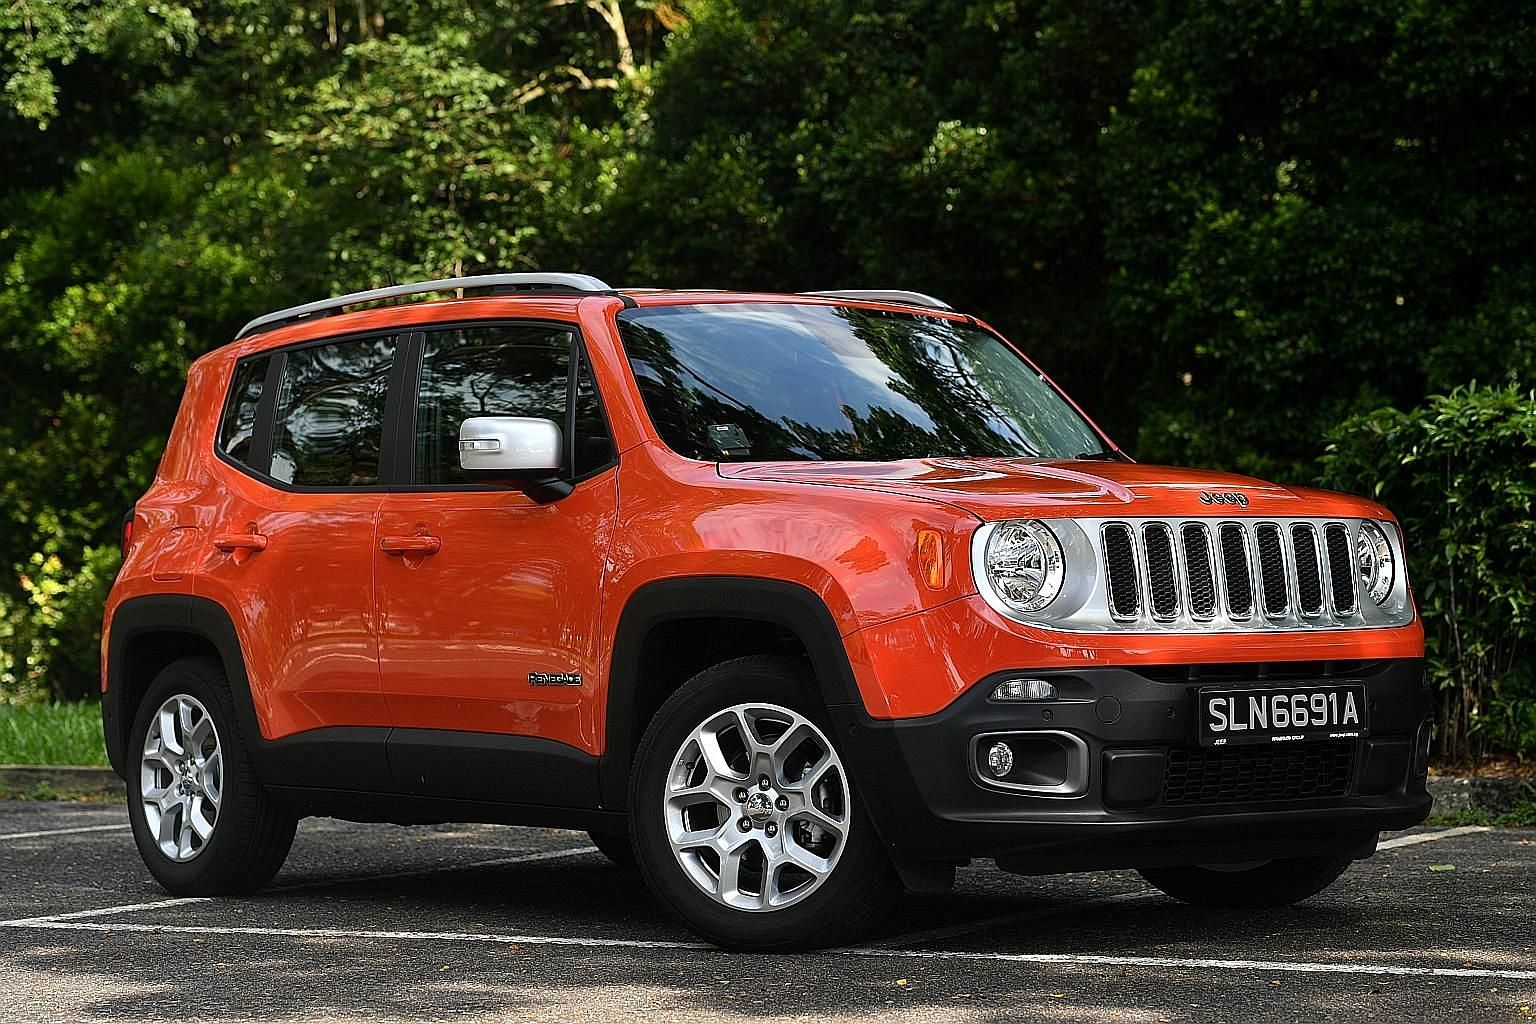 The Jeep Renegade 1.4 comes with a 1.4-litre Fiat- sourced MultiAir2 turbocharged engine that is paired with a six-speed autobox.